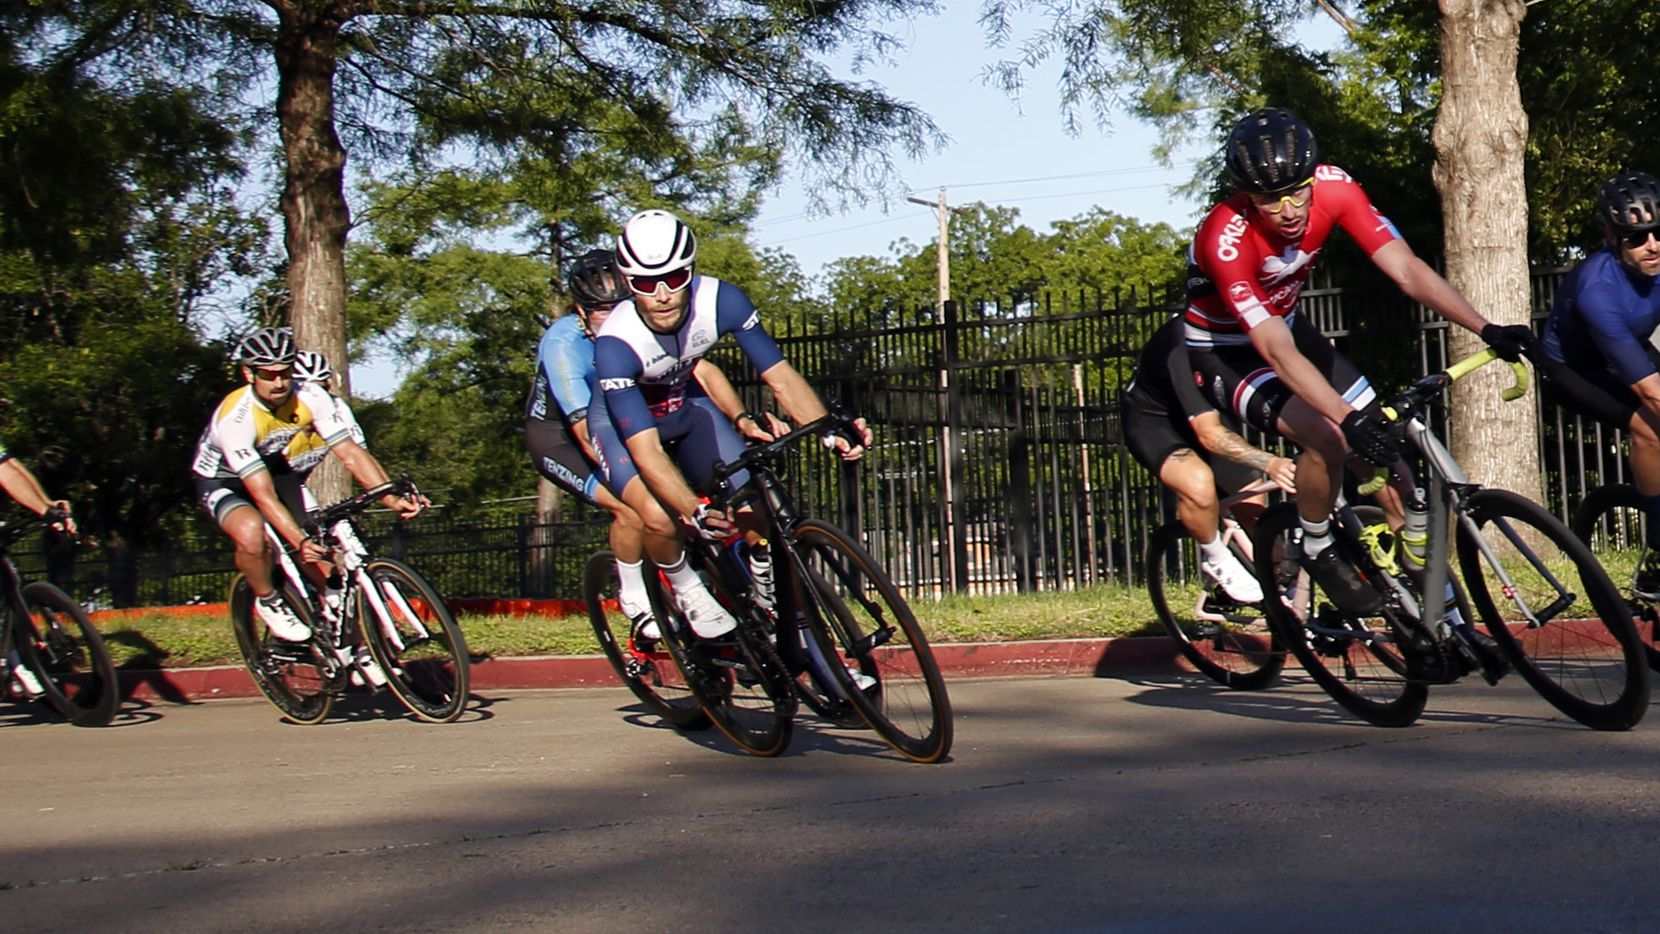 Cyclists compete during opening night for King Racing Group's cycling race season at Fair Park in Dallas on May 6, 2021.